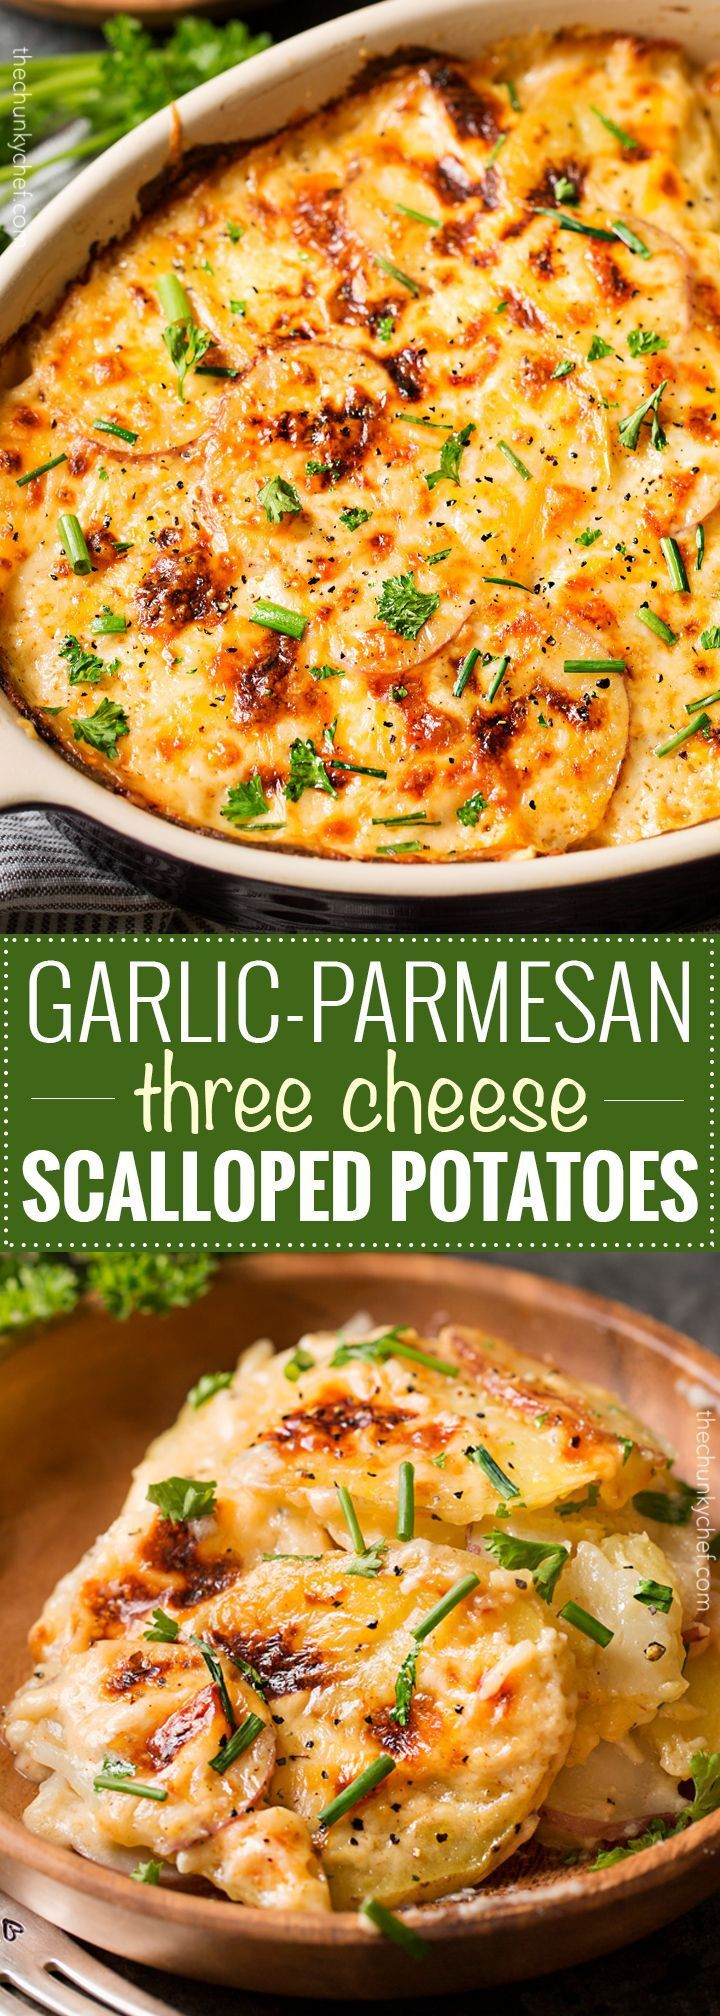 Garlic Parmesan Cheesy Scalloped Potatoes | Velvety soft and tender layers of two kinds of potatoes, smothered in a rich 3 cheese garlic sauce, then topped with extra cheese for a perfectly crispy top! It's the scalloped potato dish you've been dreaming o